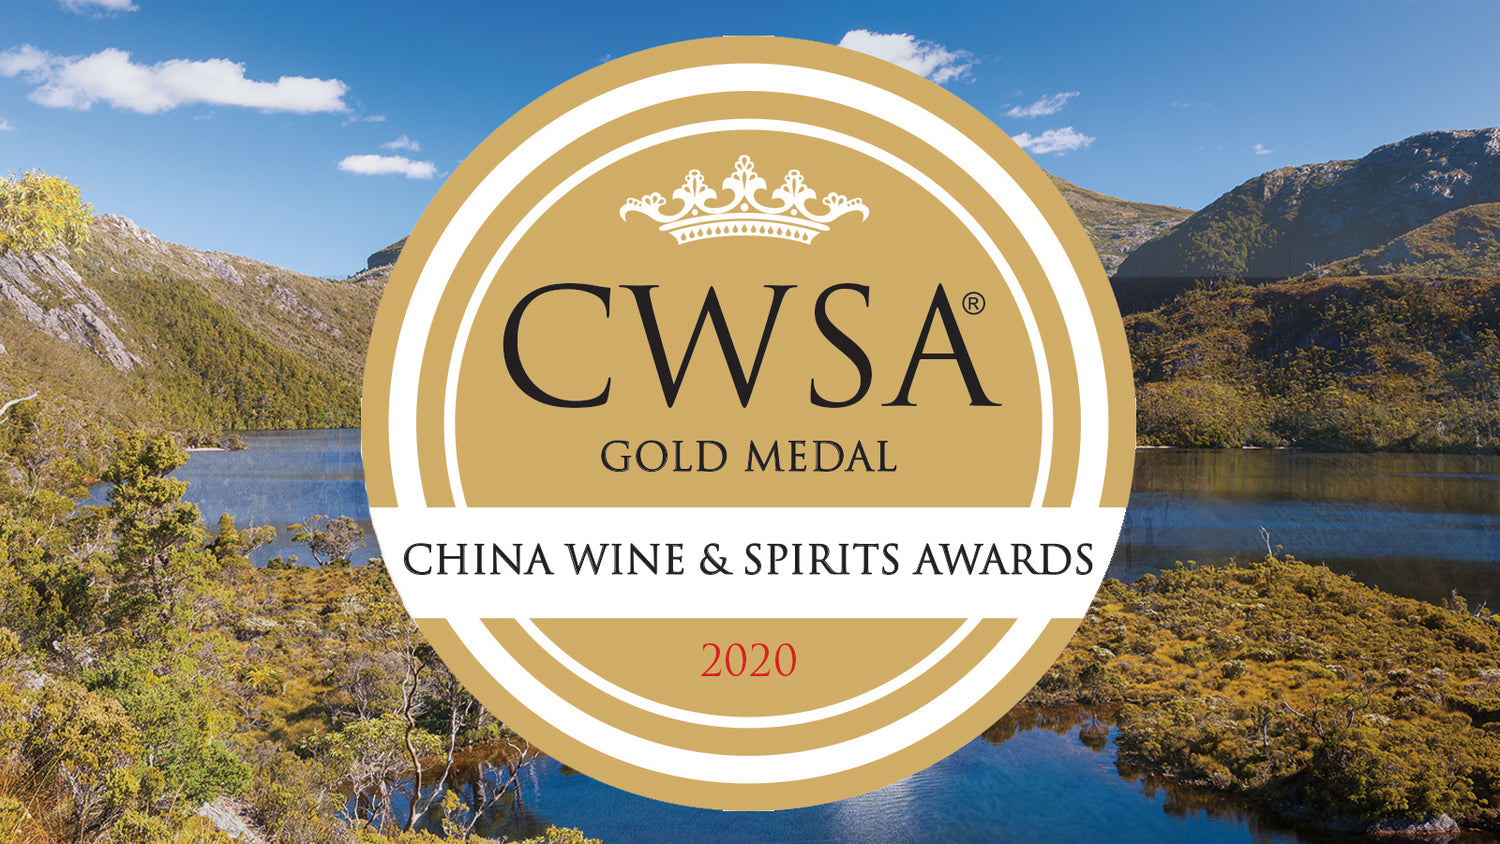 medals for tasmanian vintners at cwsa 2020